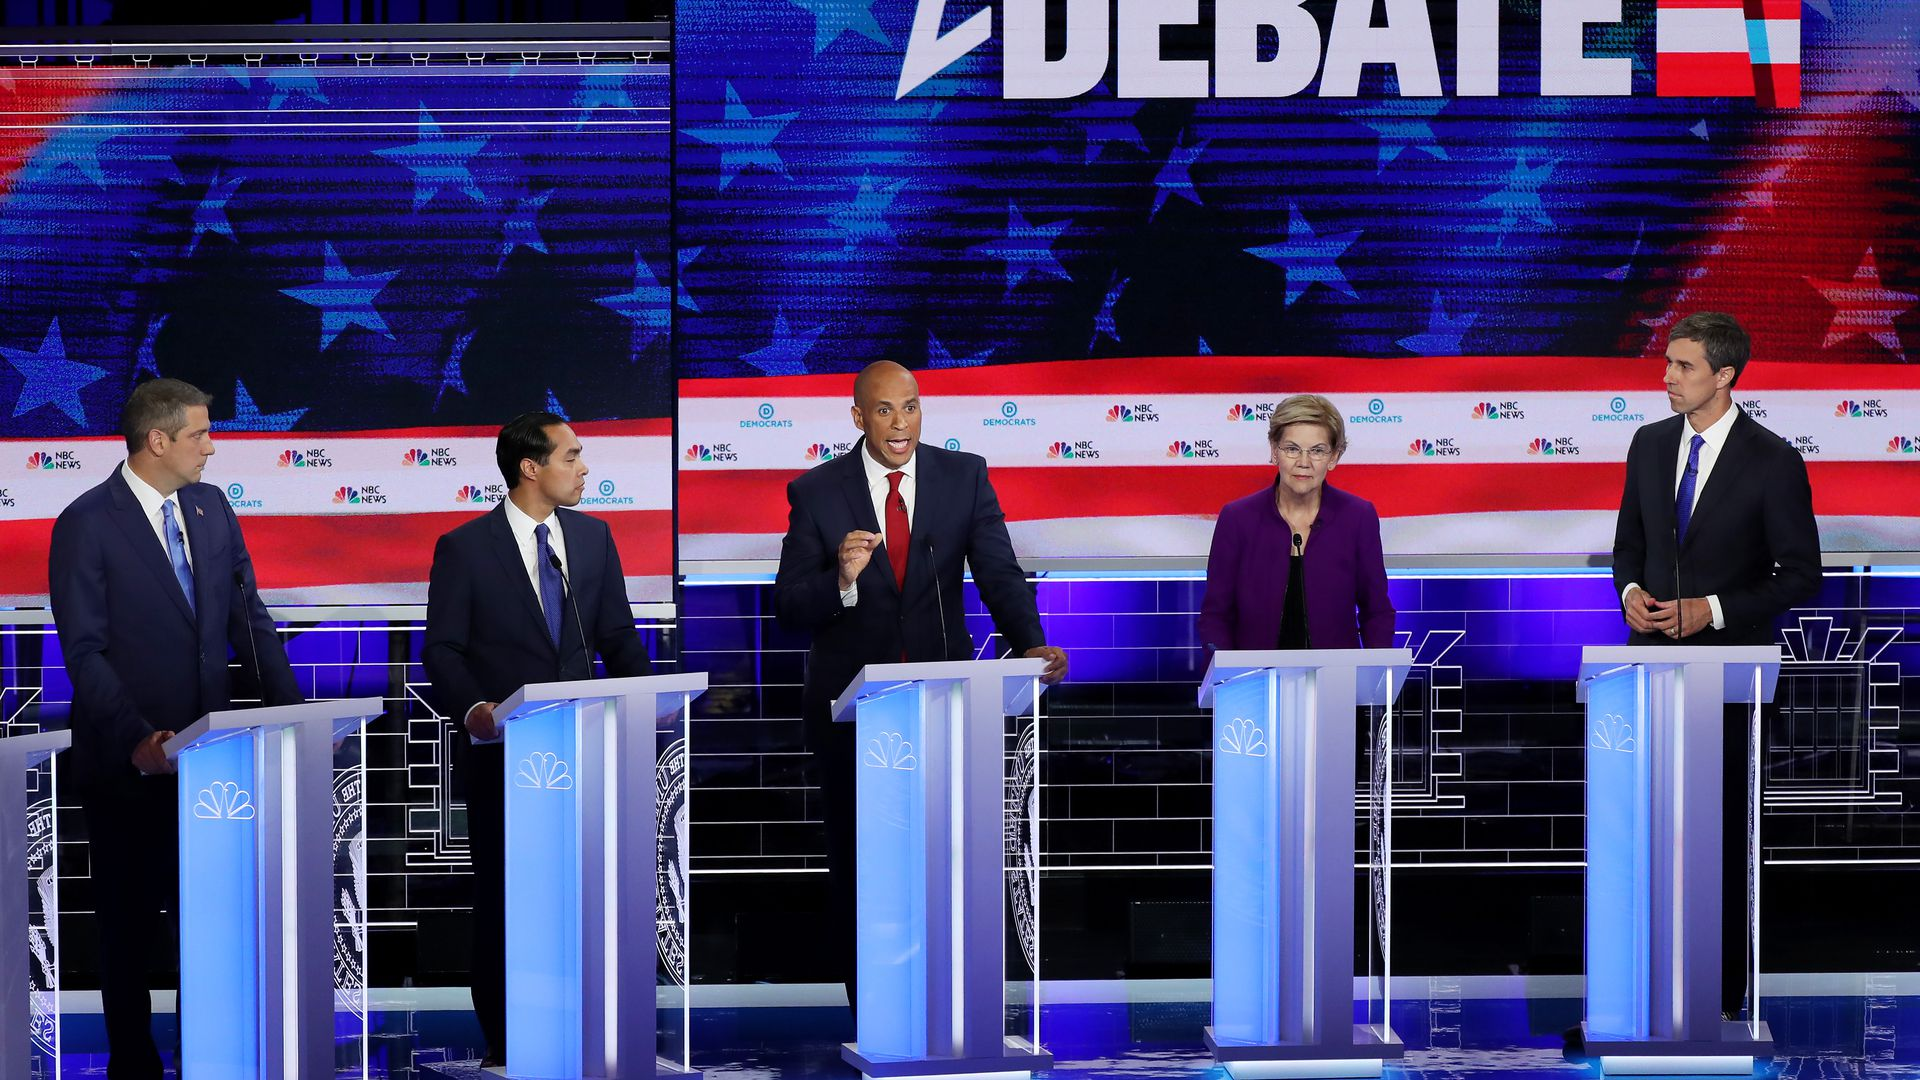 The debate stage with candidates at their podiums.